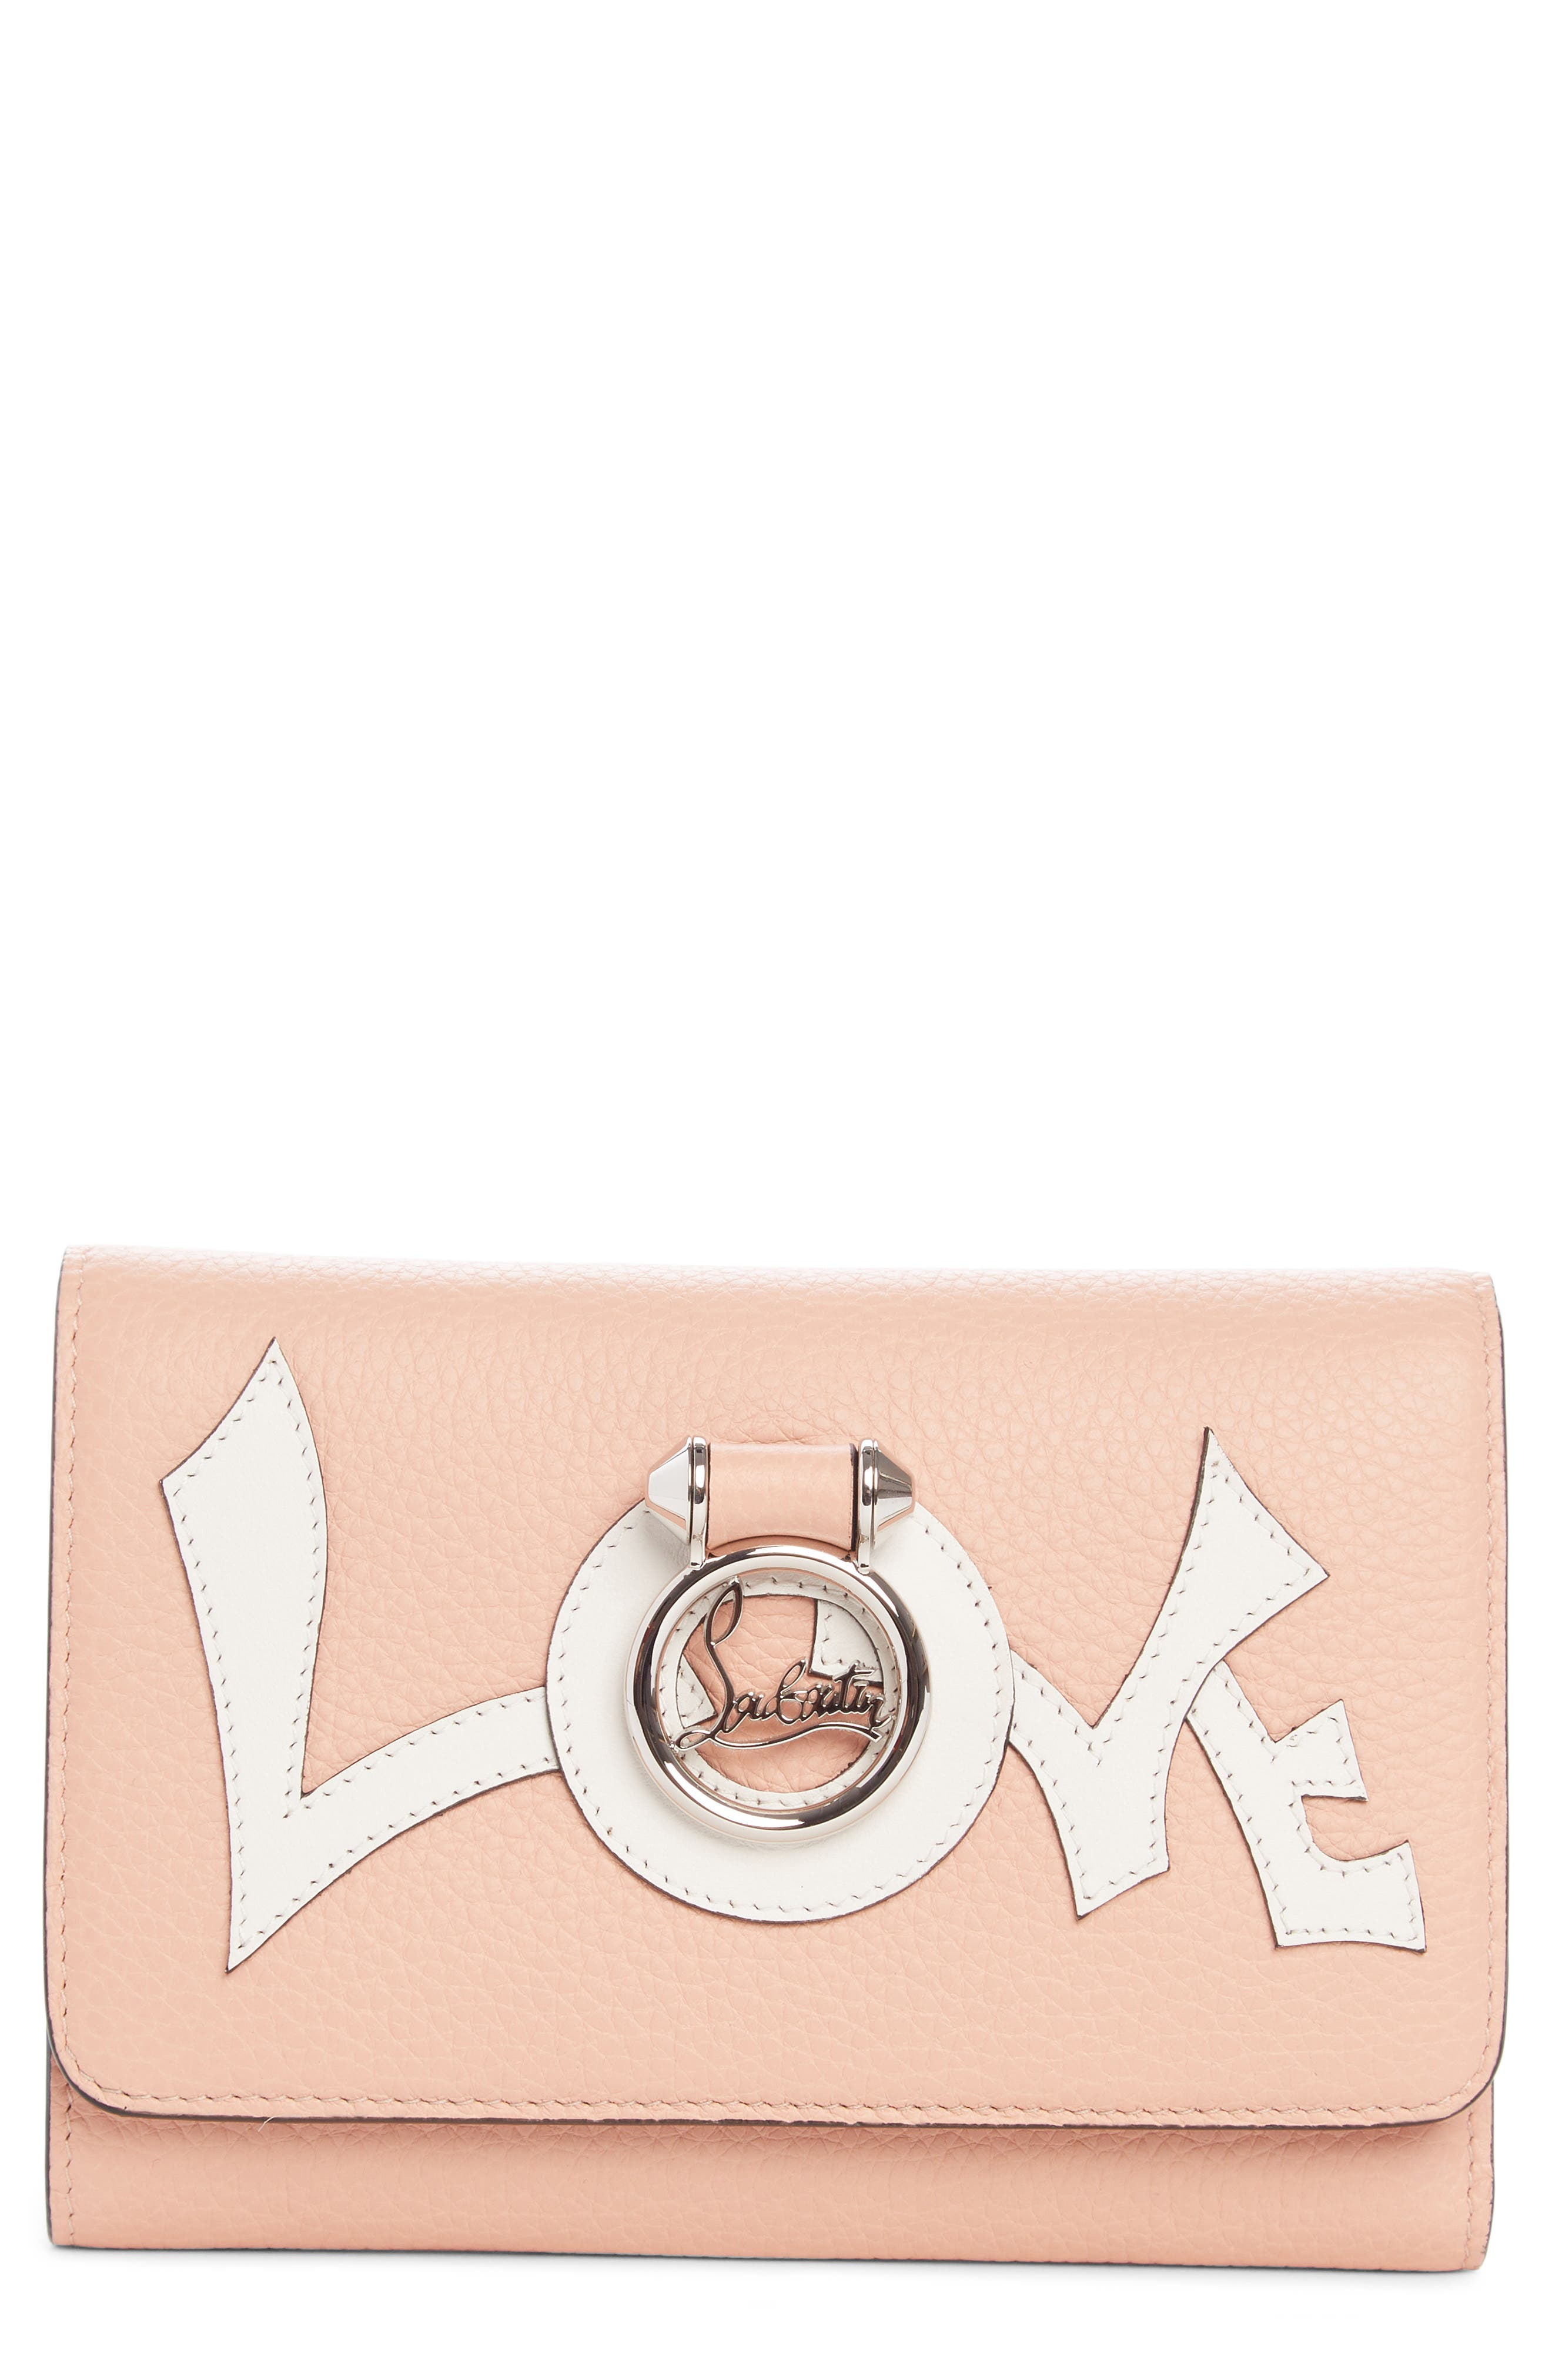 Christian Louboutin Rubylou Love Calfskin Leather Wallet